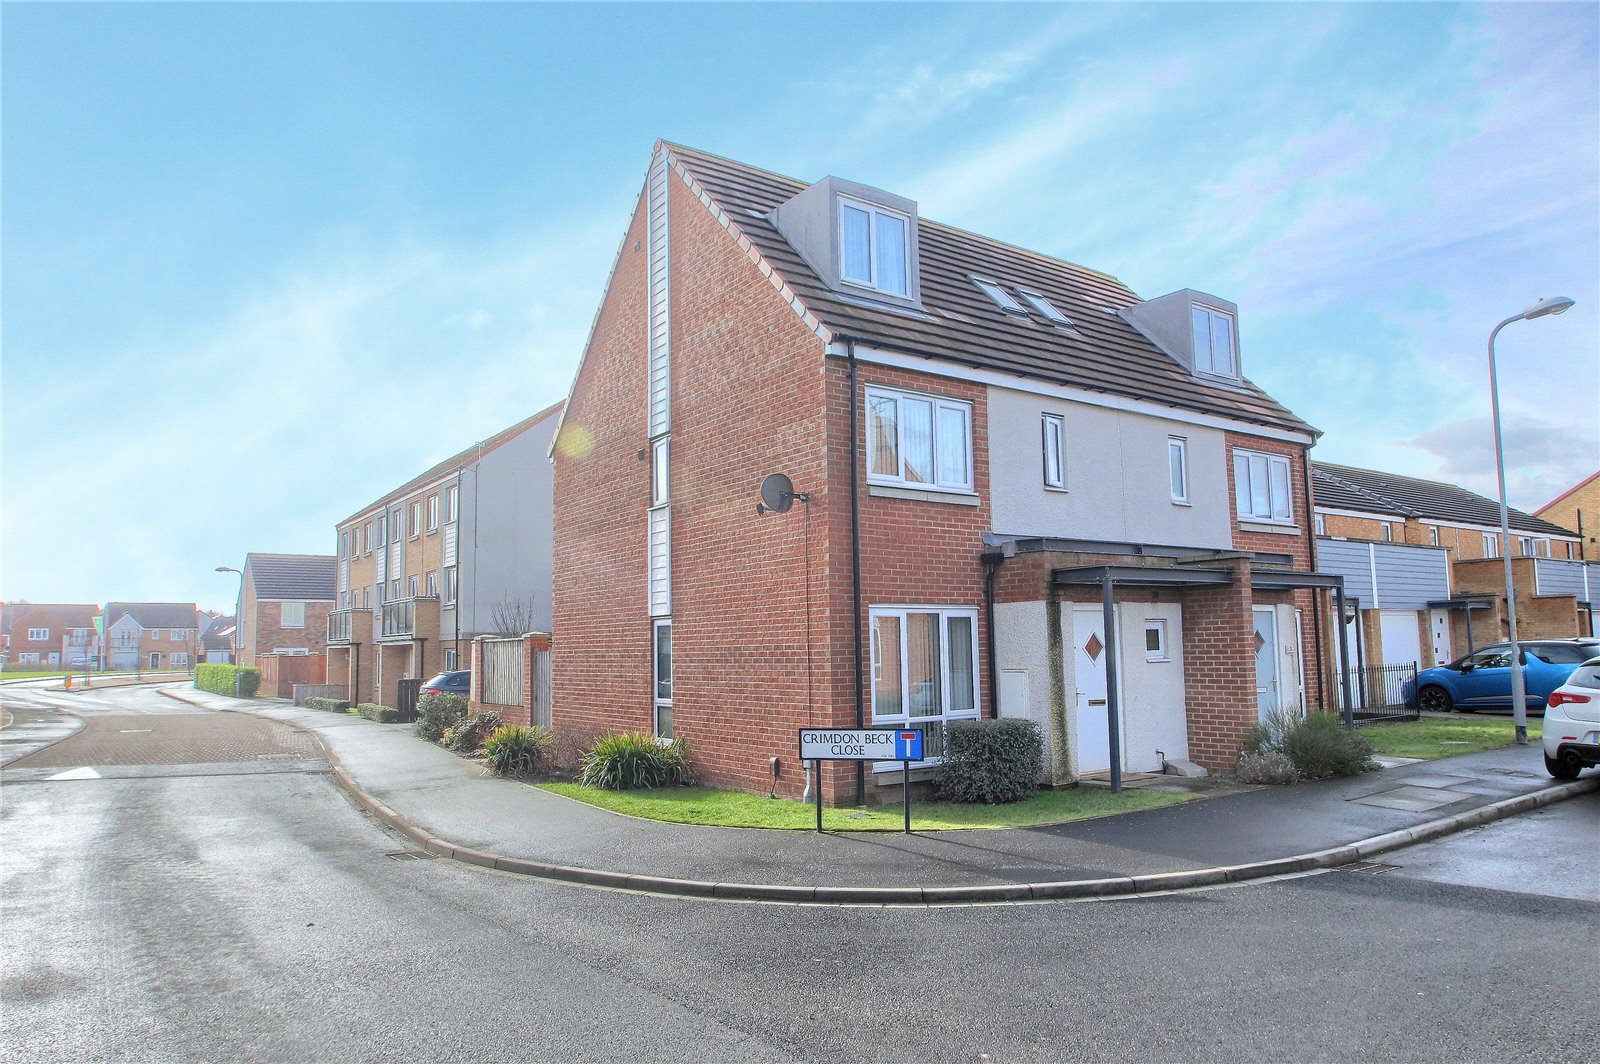 4 bed house for sale in Crimdon Beck Close, Whitewater Glade  - Property Image 1